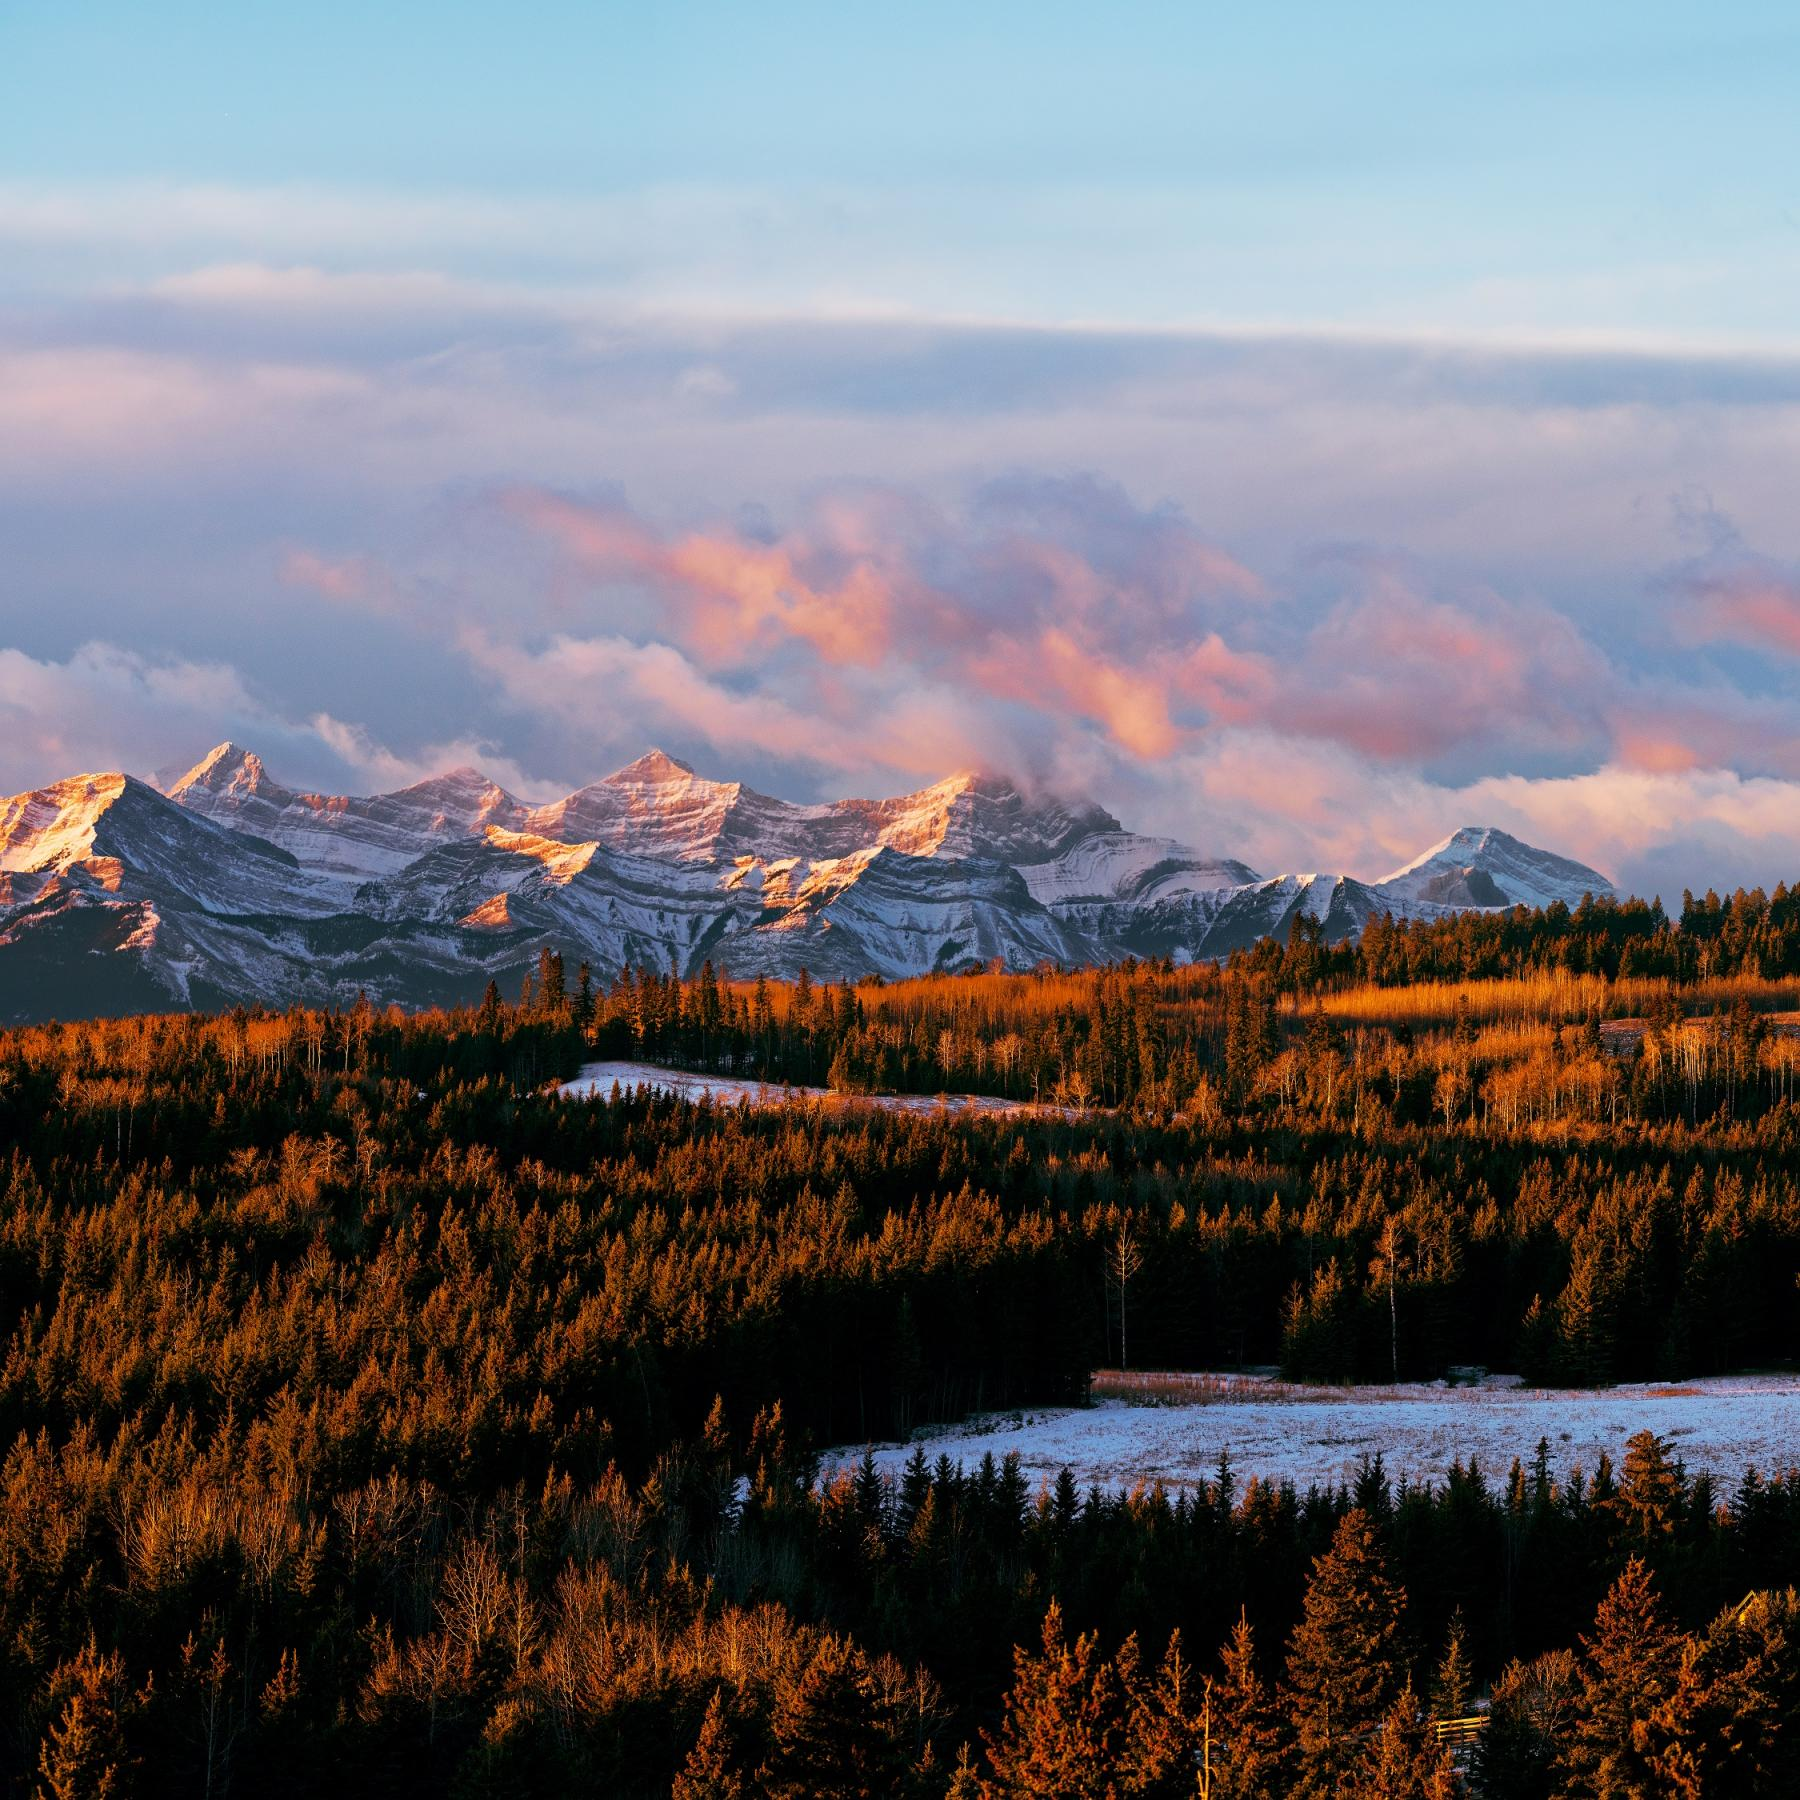 Autumn Colours, Northern Lights! - the 2-in-1 trip starting at Canadian Rockies, Canada